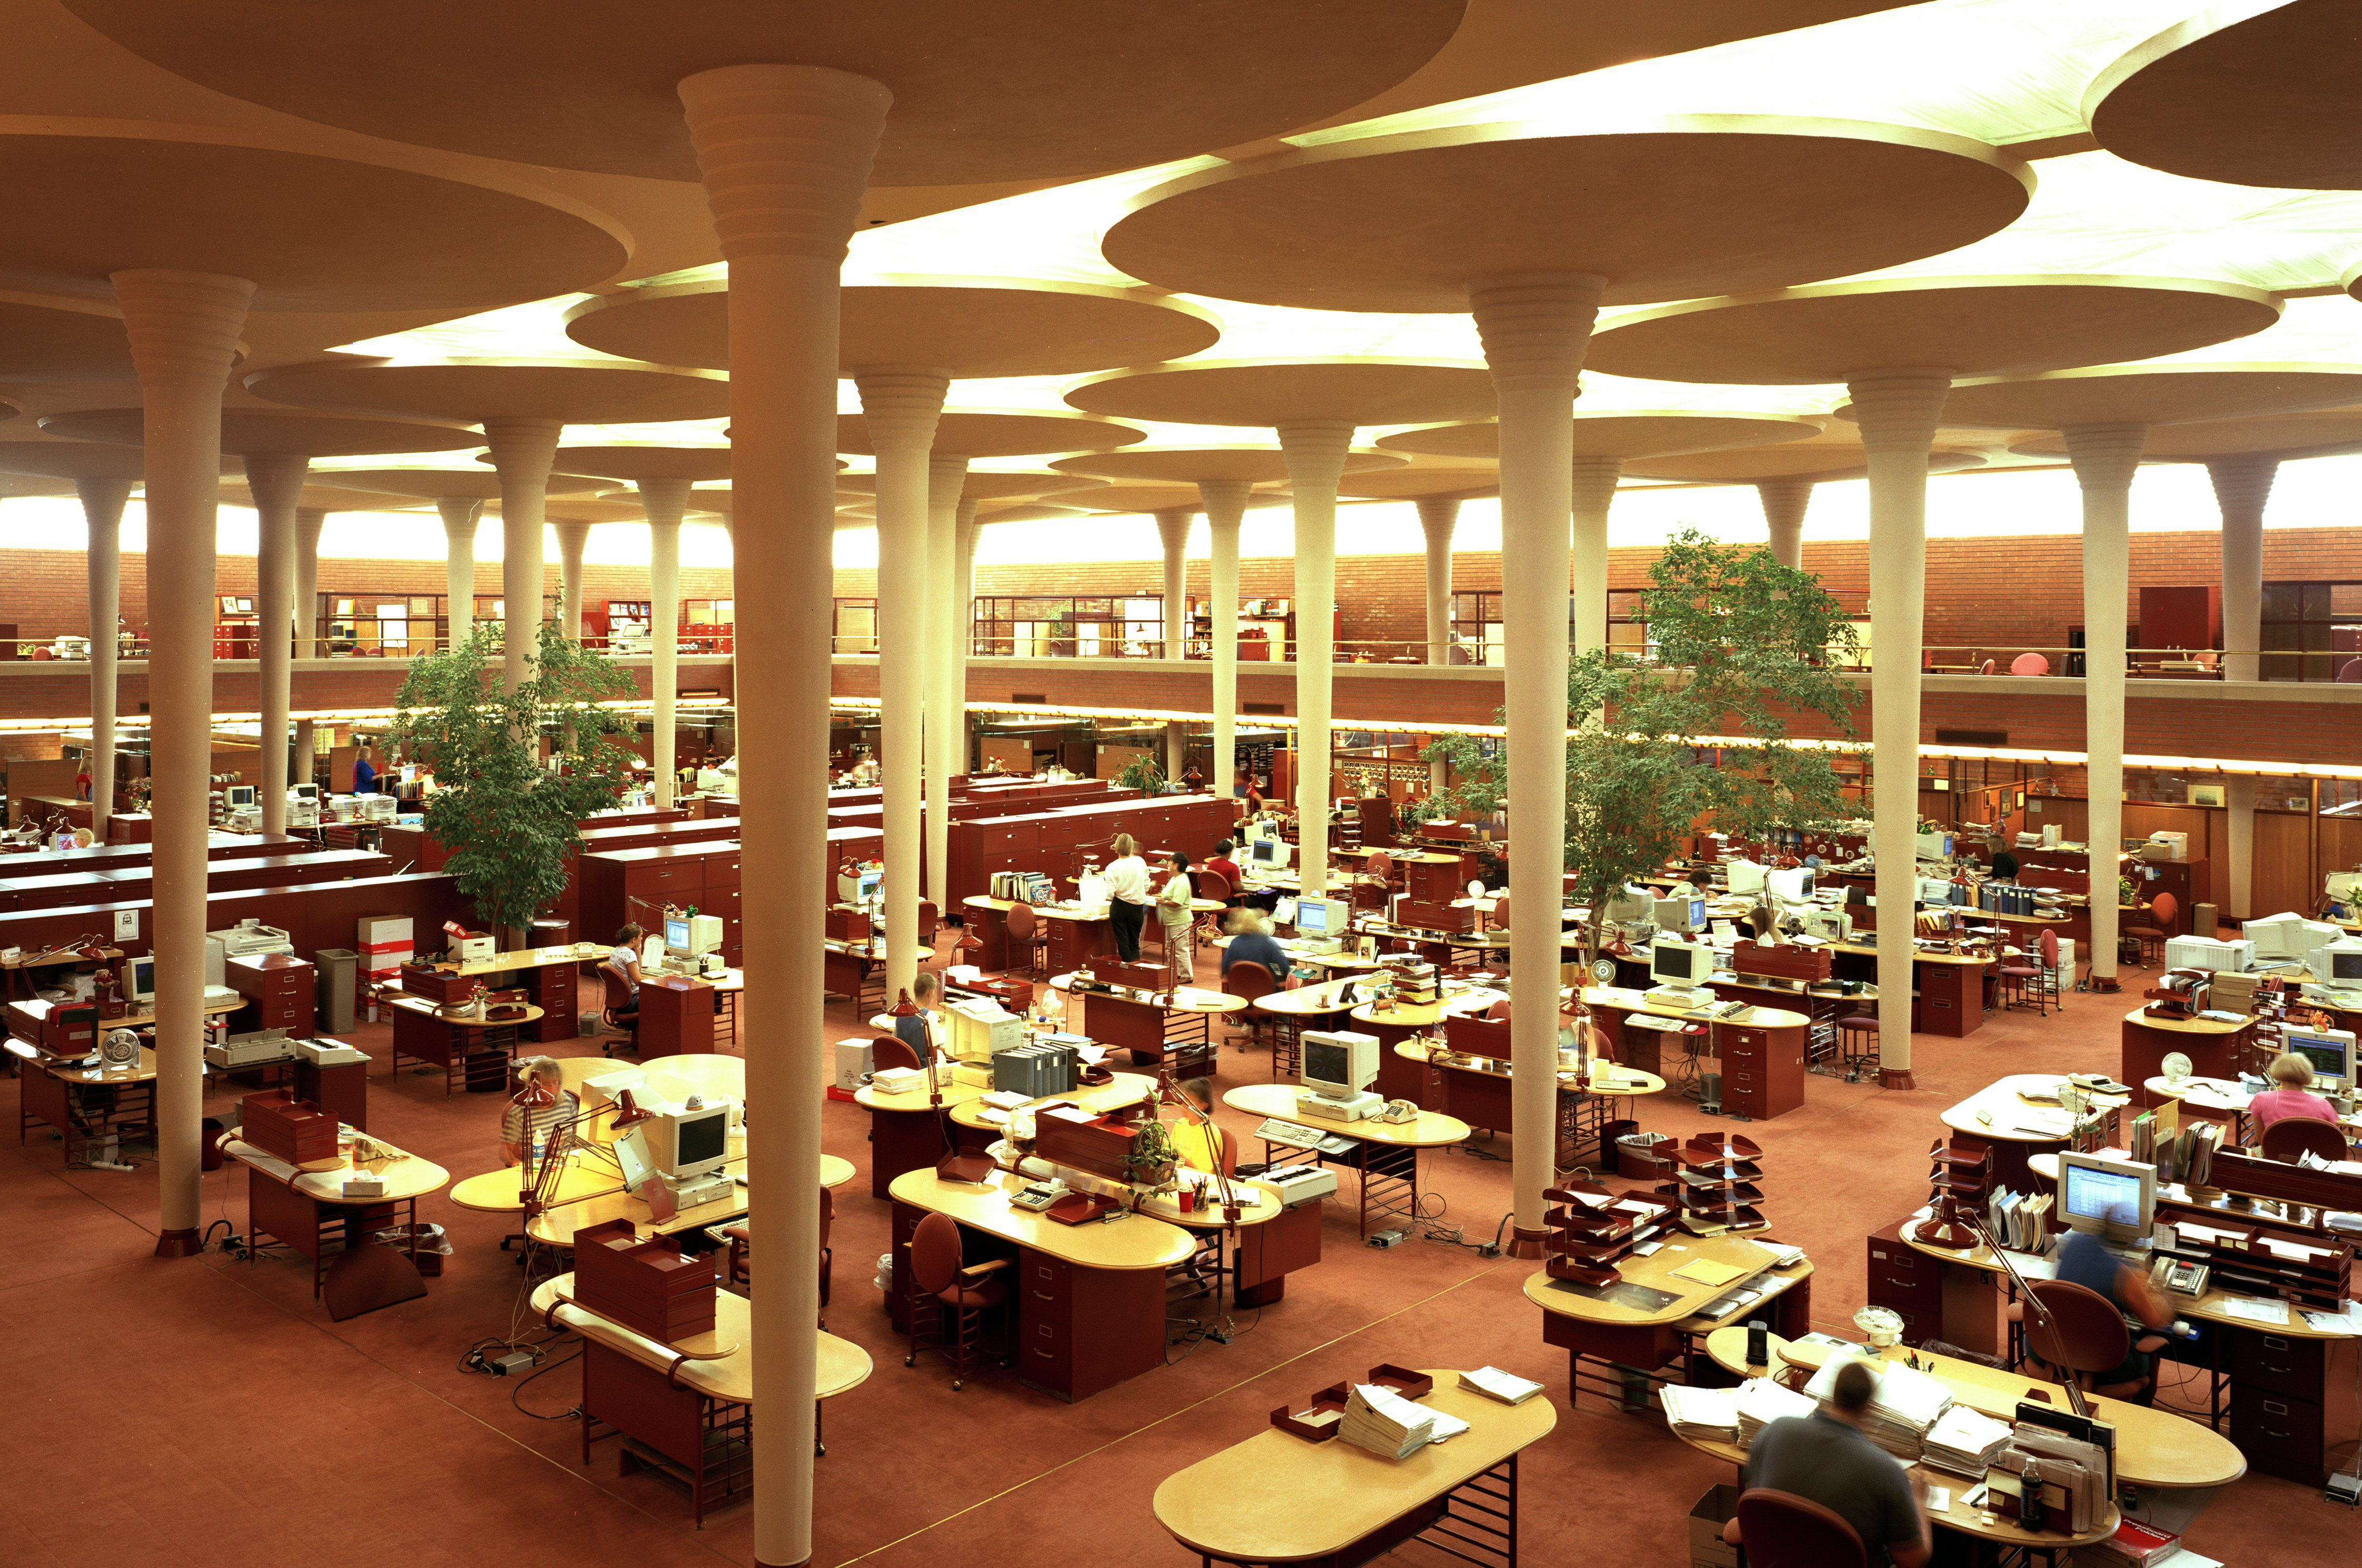 oval desks arranged in an open space, well-lit, with space-age looking columns topped with thin mushroom-like capitals